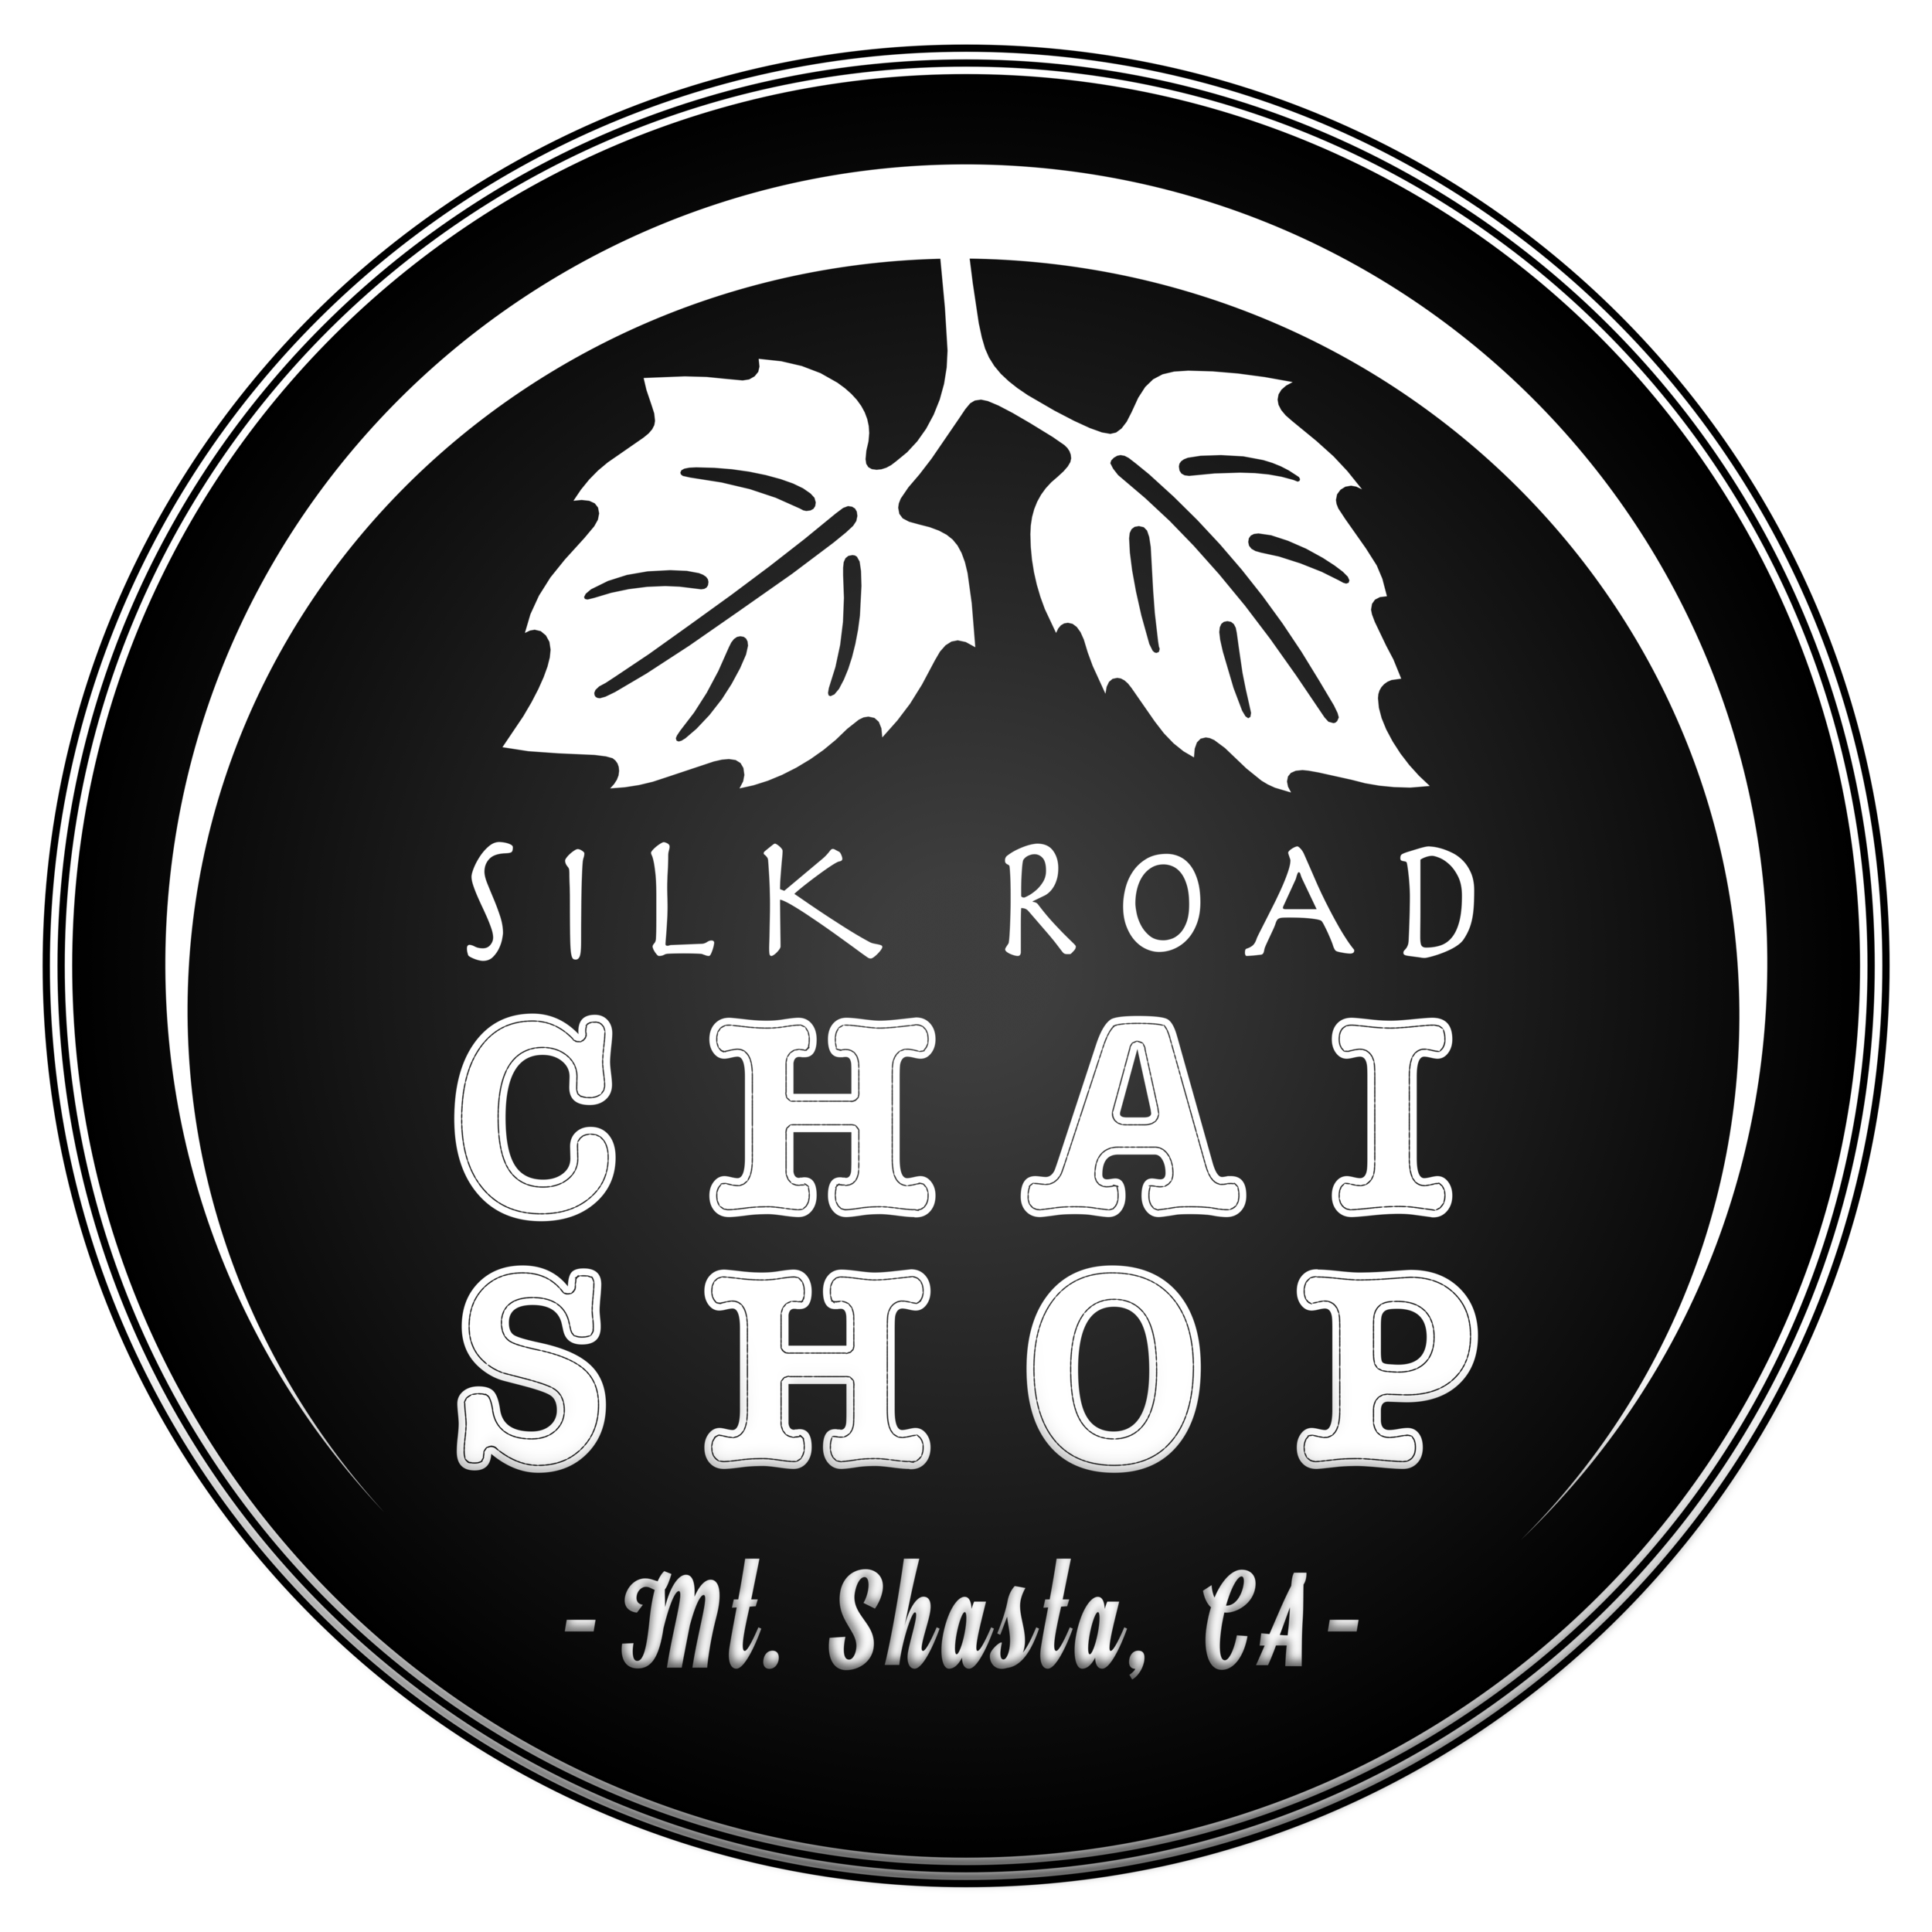 The Silk Road Chai Shop is a vegan cafe and peaceful space at the base of Mount Shasta. We serve hot & iced organic teas, mushroom coffee, vegan iced chai & fresh local kombucha, as well as a daily selection of vegan, gluten-free baked goods. Offering wifi, a bookshop, tarot readings and a calm atmosphere in the day, we also host conscious evening events. The Chai Shop is a meeting place for those who hear the call of Mount Shasta. -